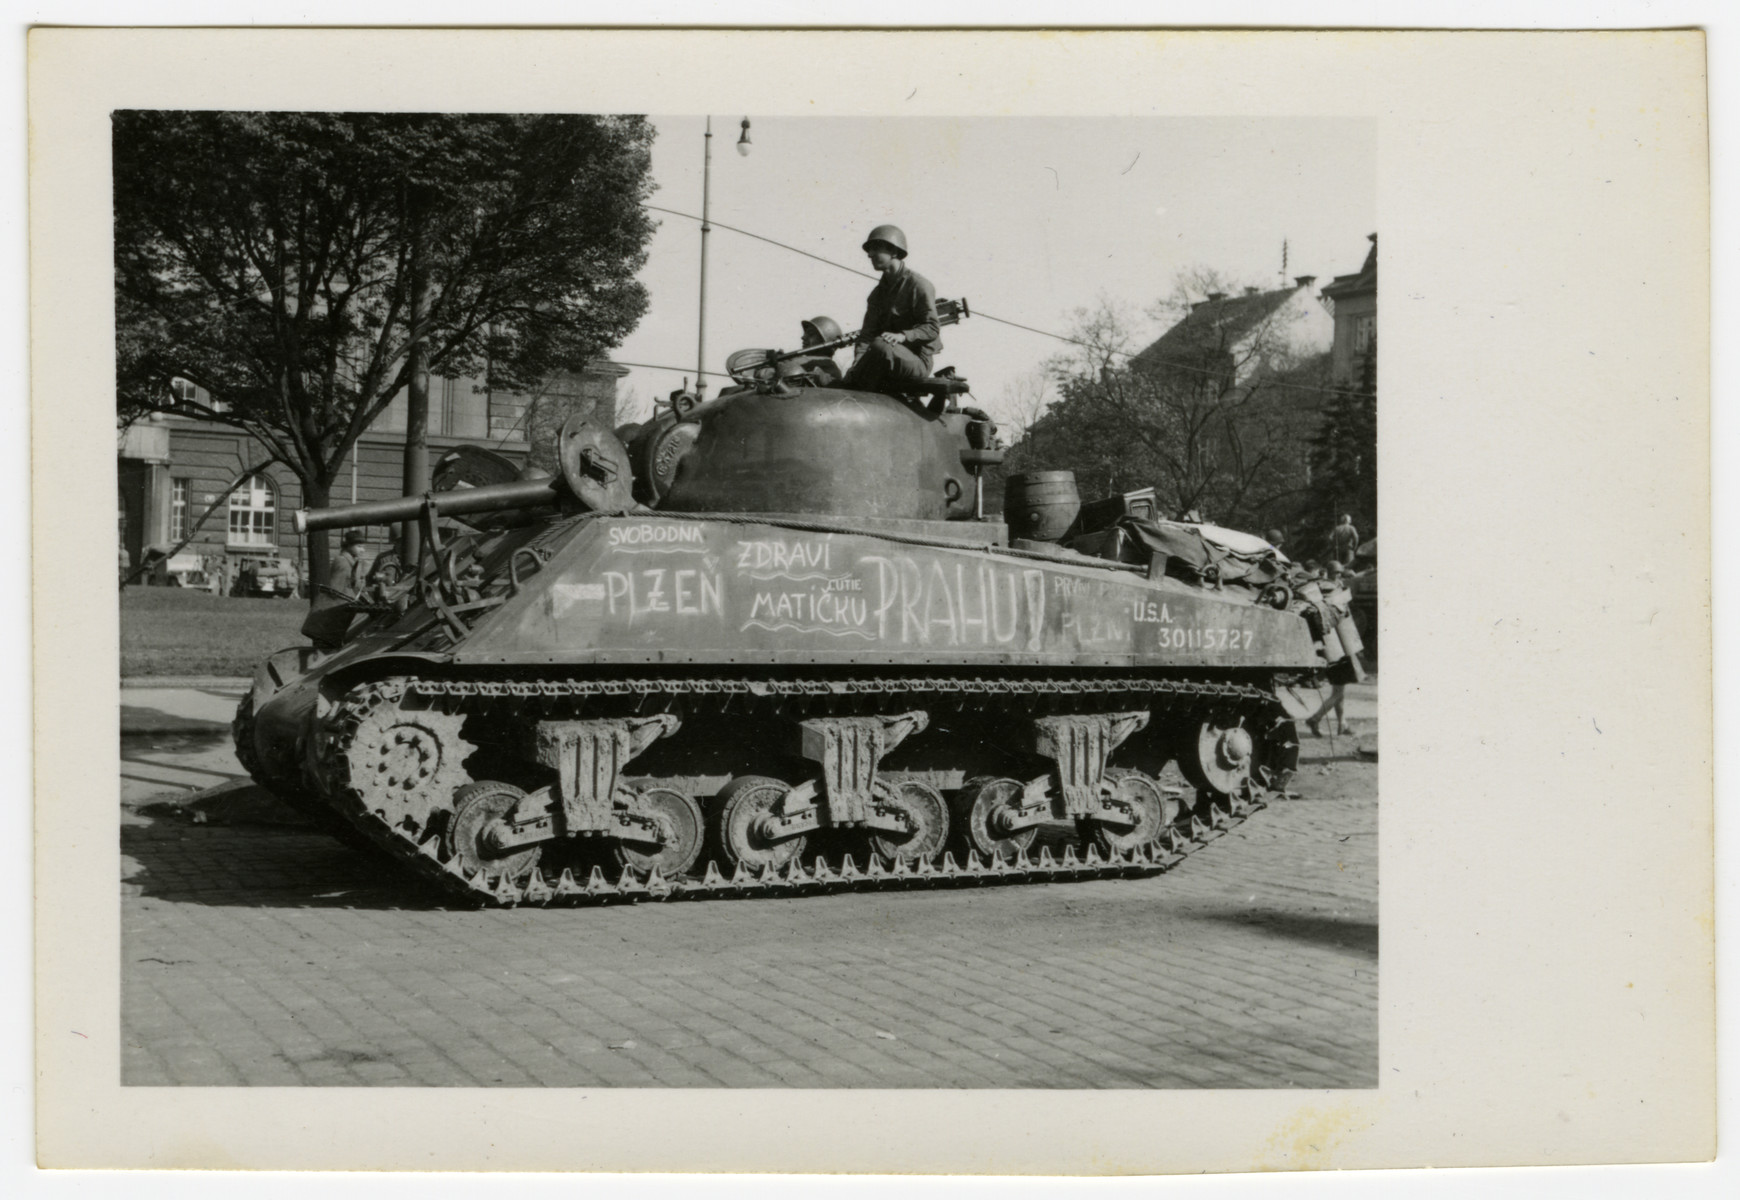 Am American tank drives down a street in Pilsen, Czechoslovakia on liberation day.